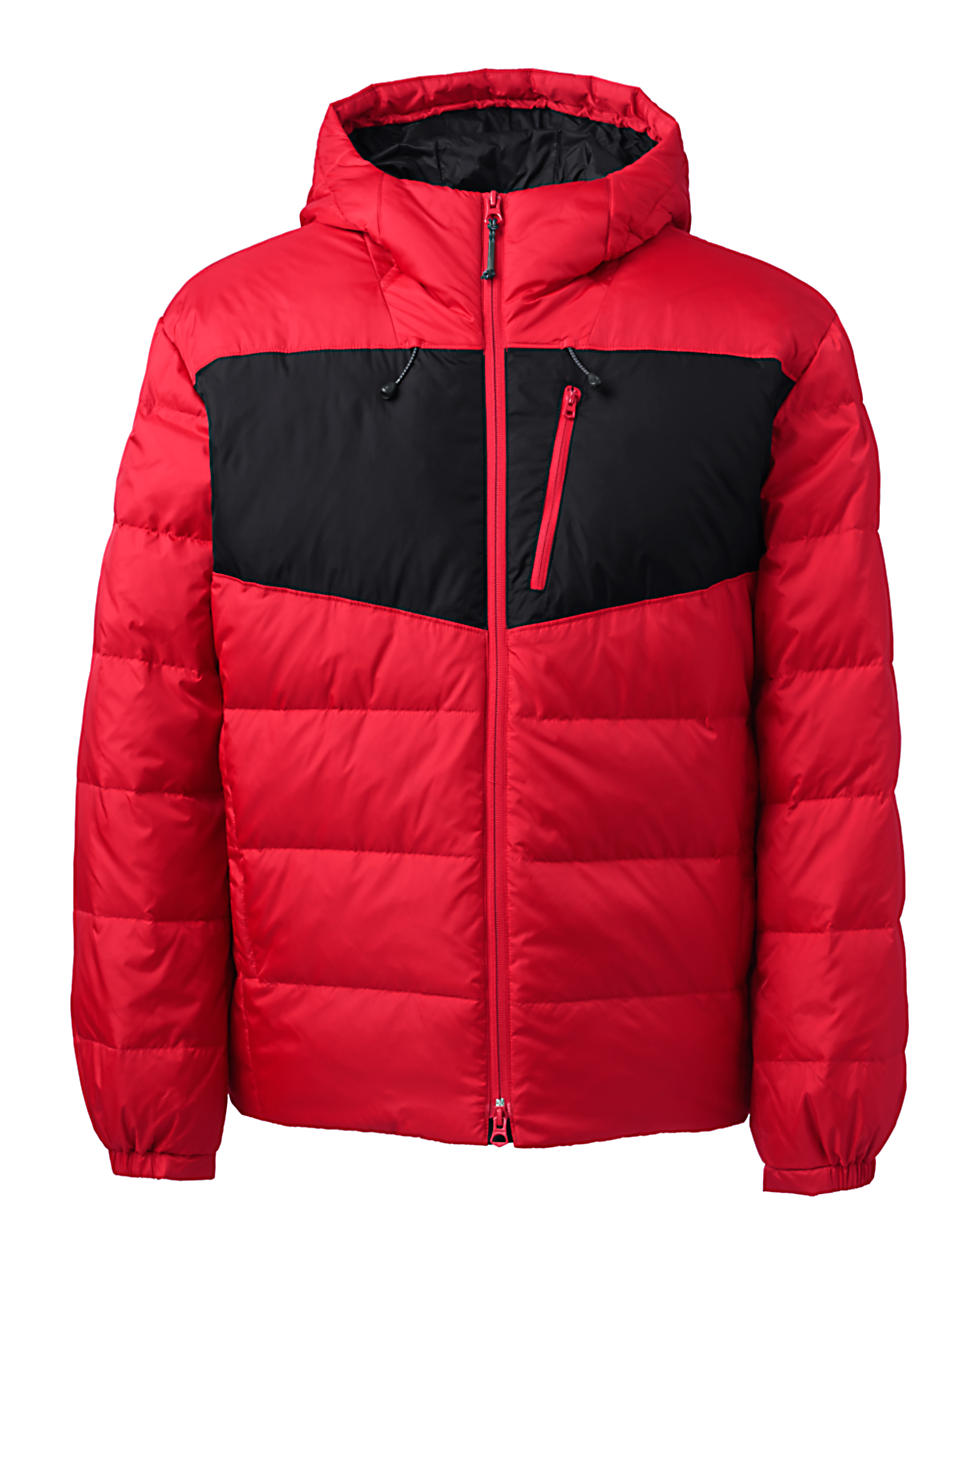 Lands End Mens Expedition Winter Down Puffer Jacket